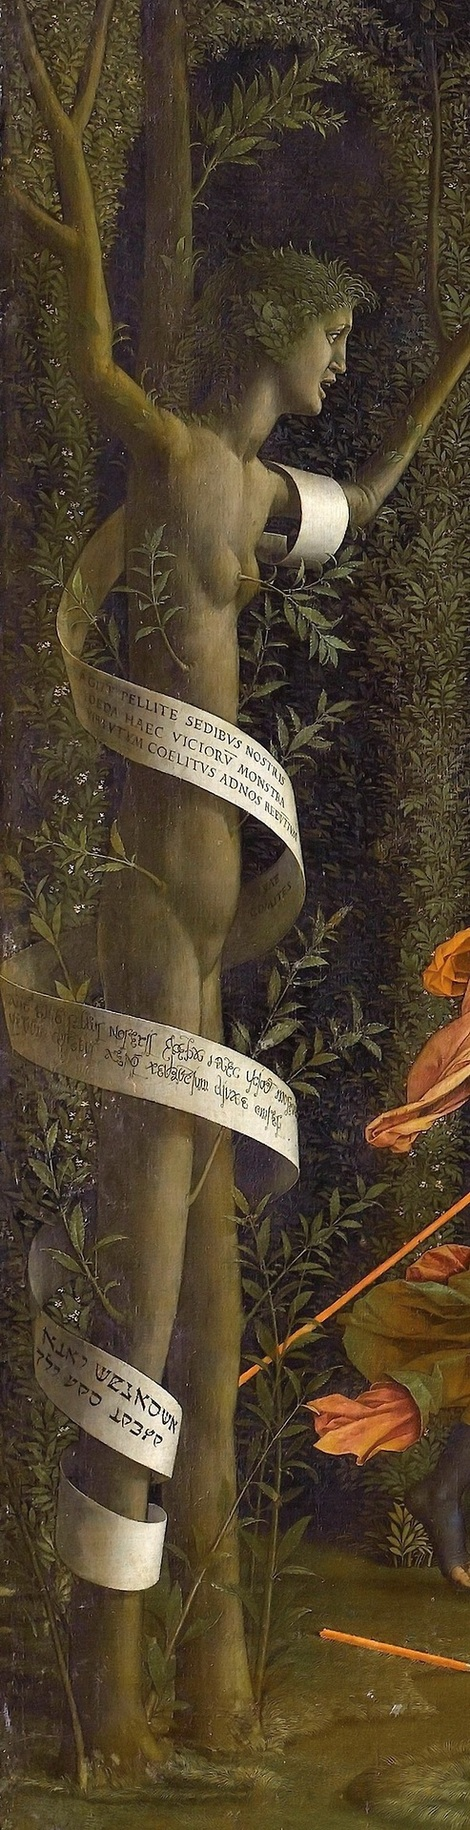 Andrea Mantegna, Minerva Expelling the Vices from the Garden of Virtue, detail. 1502 on ArtStack #andrea-mantegna #art